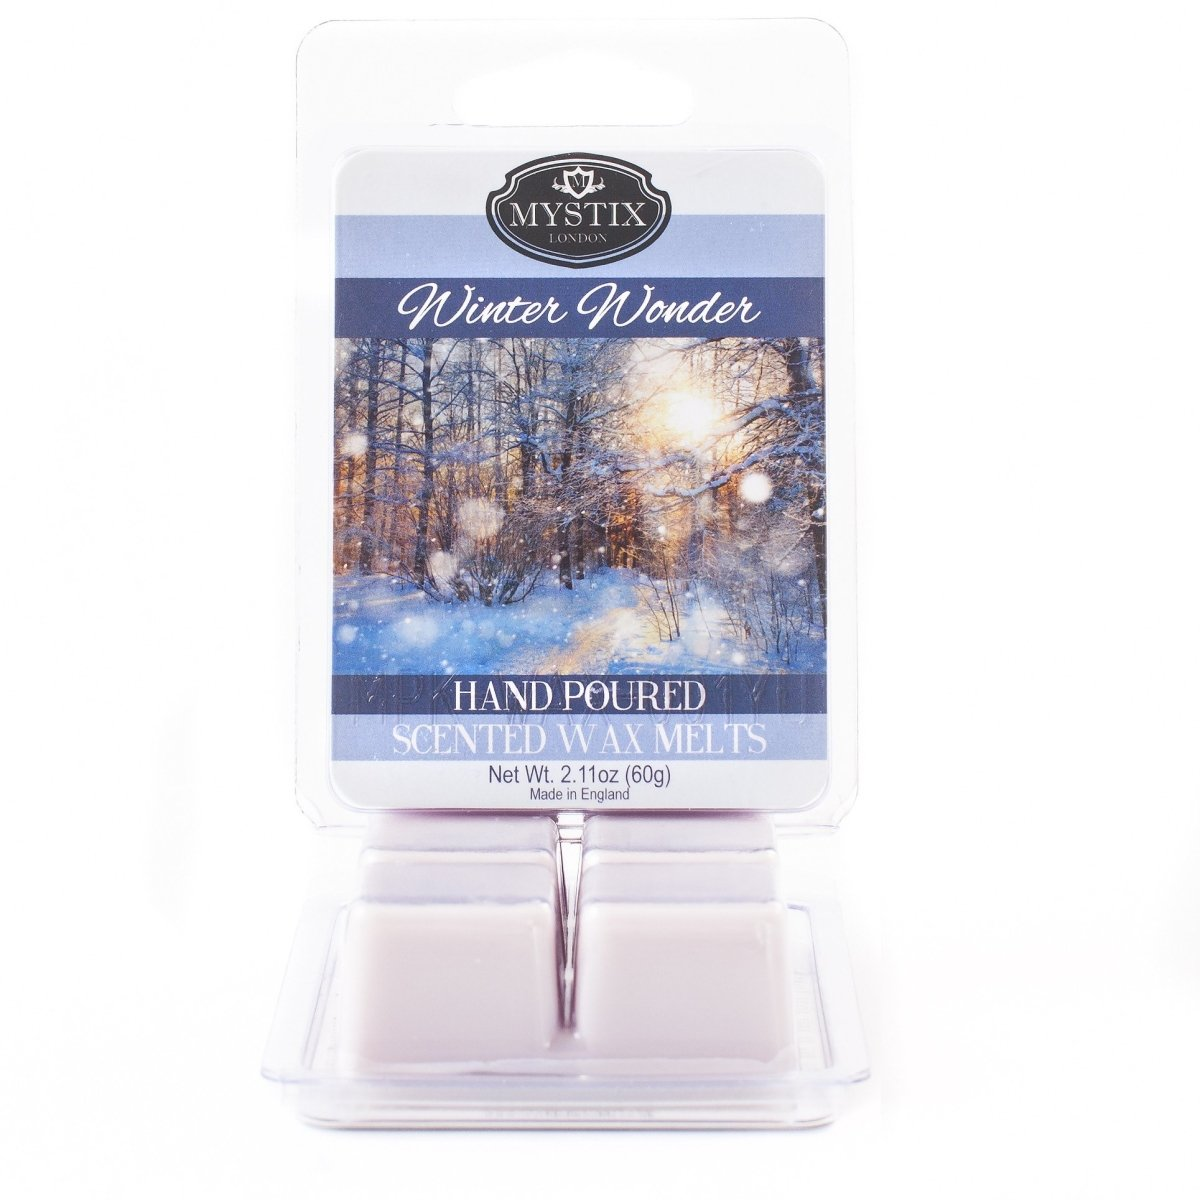 Winter Wonder | Scented Wax Melt Clamshell - Mystic Moments UK